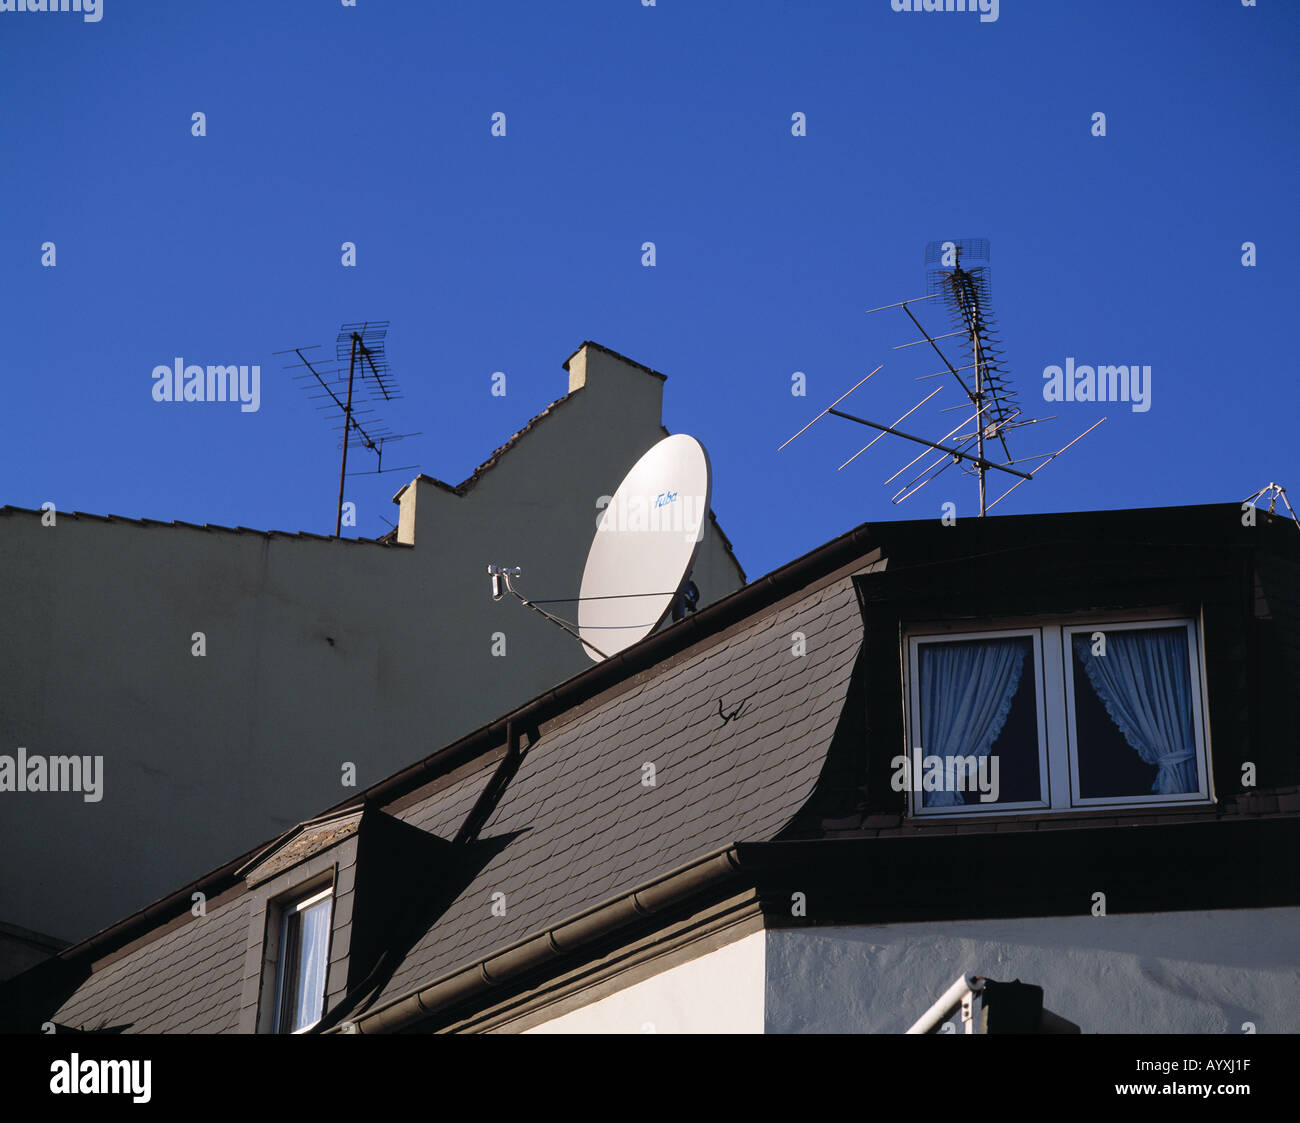 Parabolic Antenna And Customary Antennas On A House Roof, Digital And  Analogue, Analogous, Television, Radio, Radio Reception, Television Antenna,  TV Aerial ...